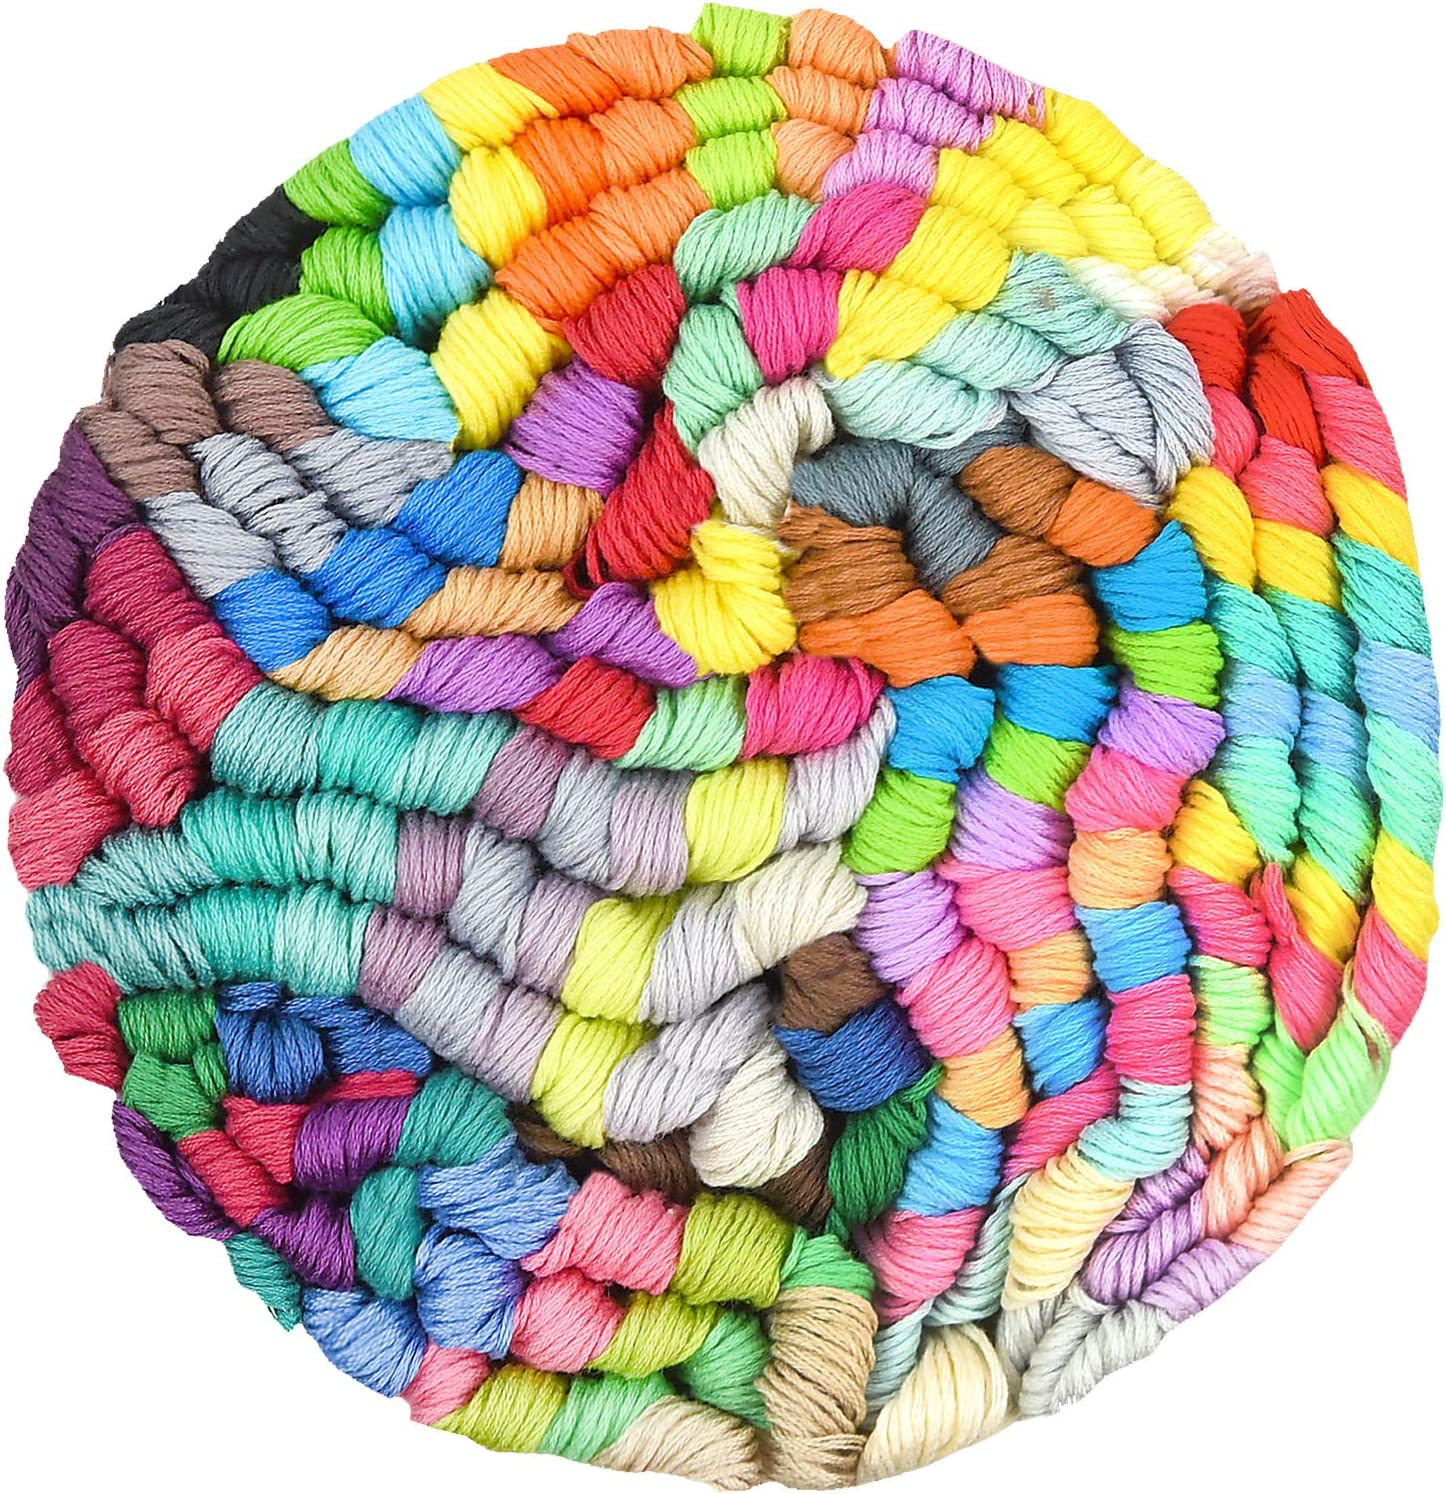 Sifang Rainbow Embroidery Skeins,Premium Multi Cross Stitch Threads 150 Color Crafts Floss Friendship Bracelet String